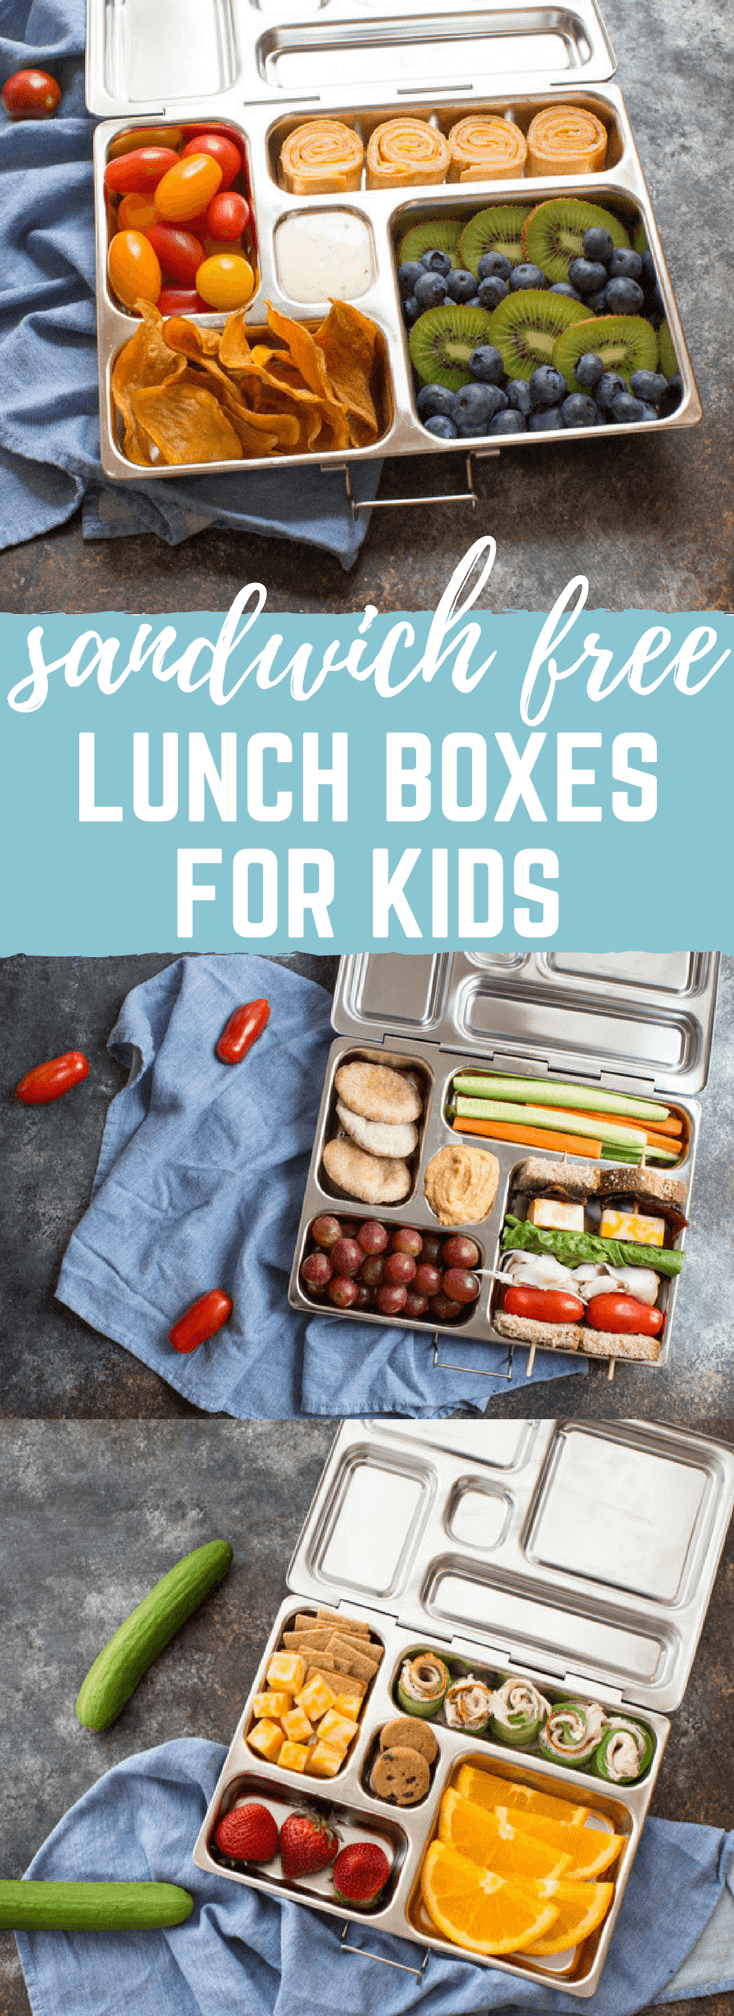 Sandwich Free Kid Friendly Lunch Box Ideas | lunches easy to meal prep